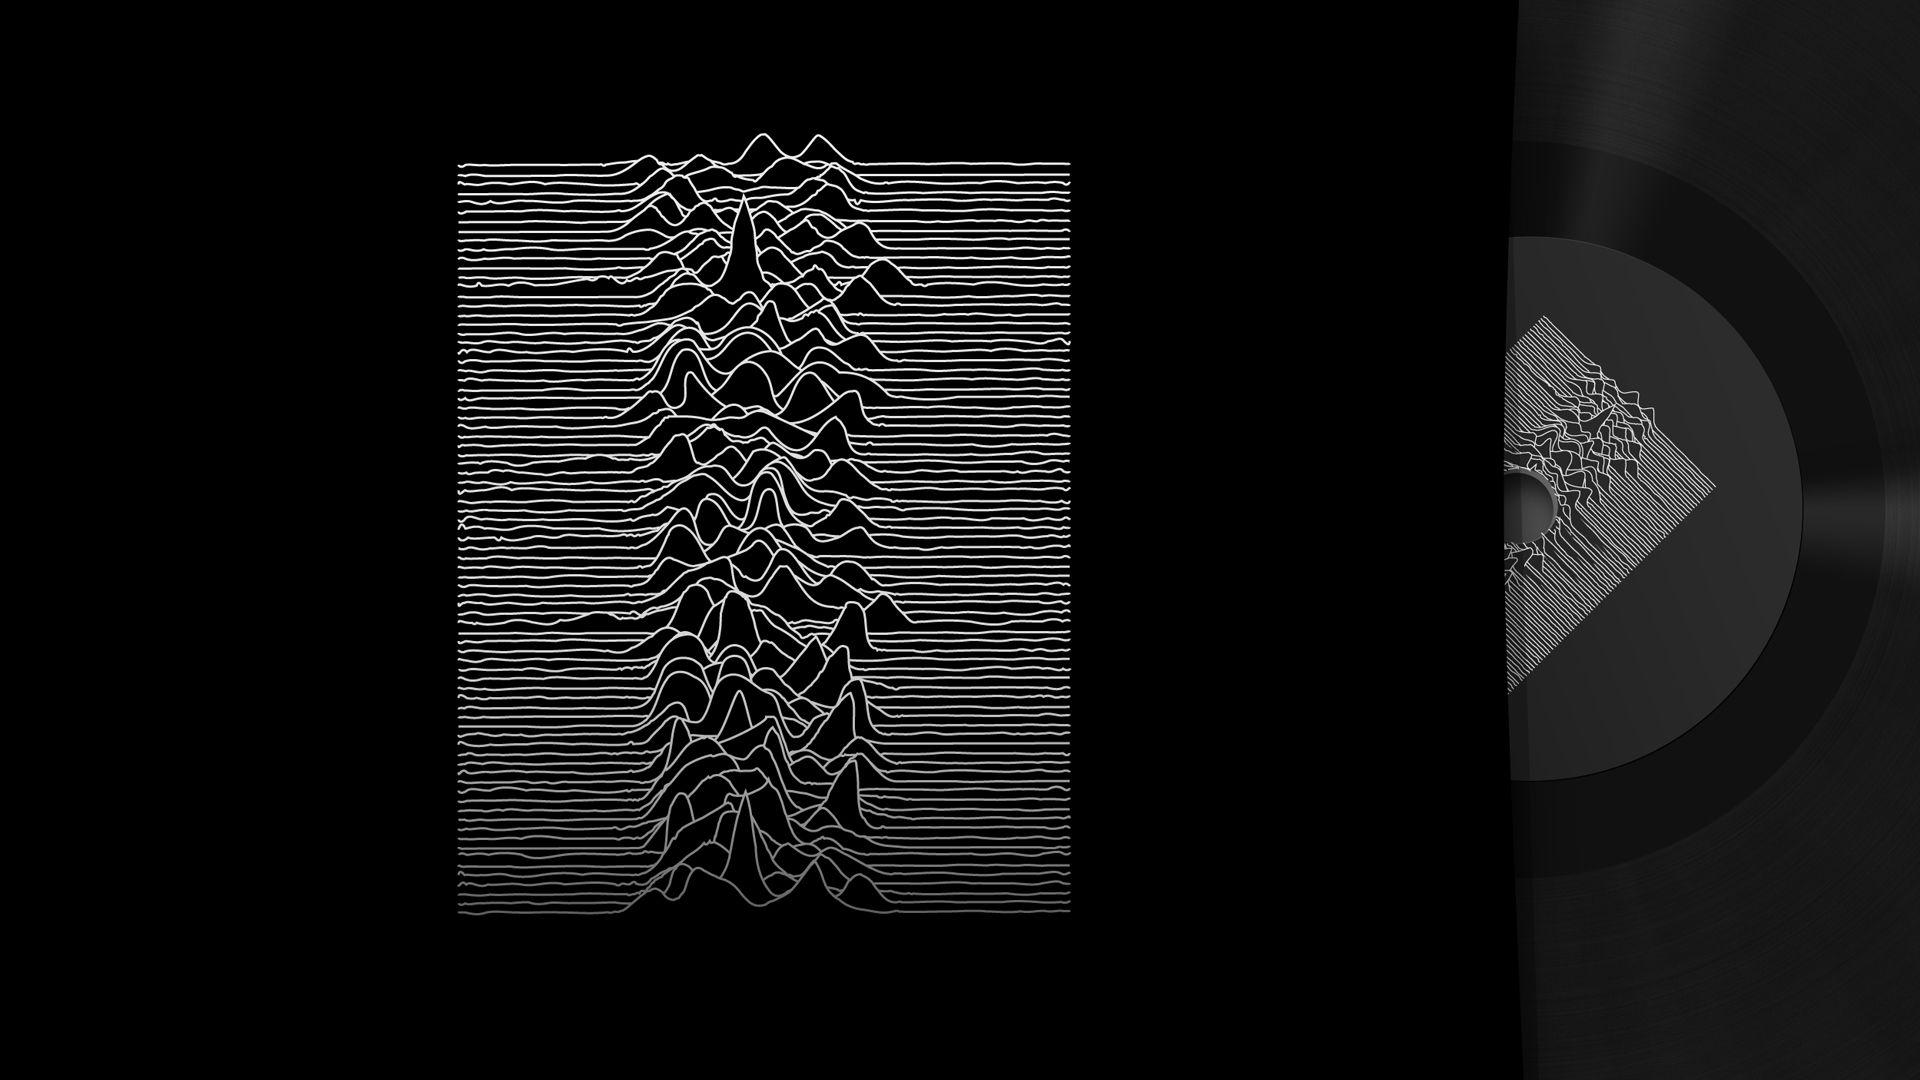 joy division images hd - photo #3